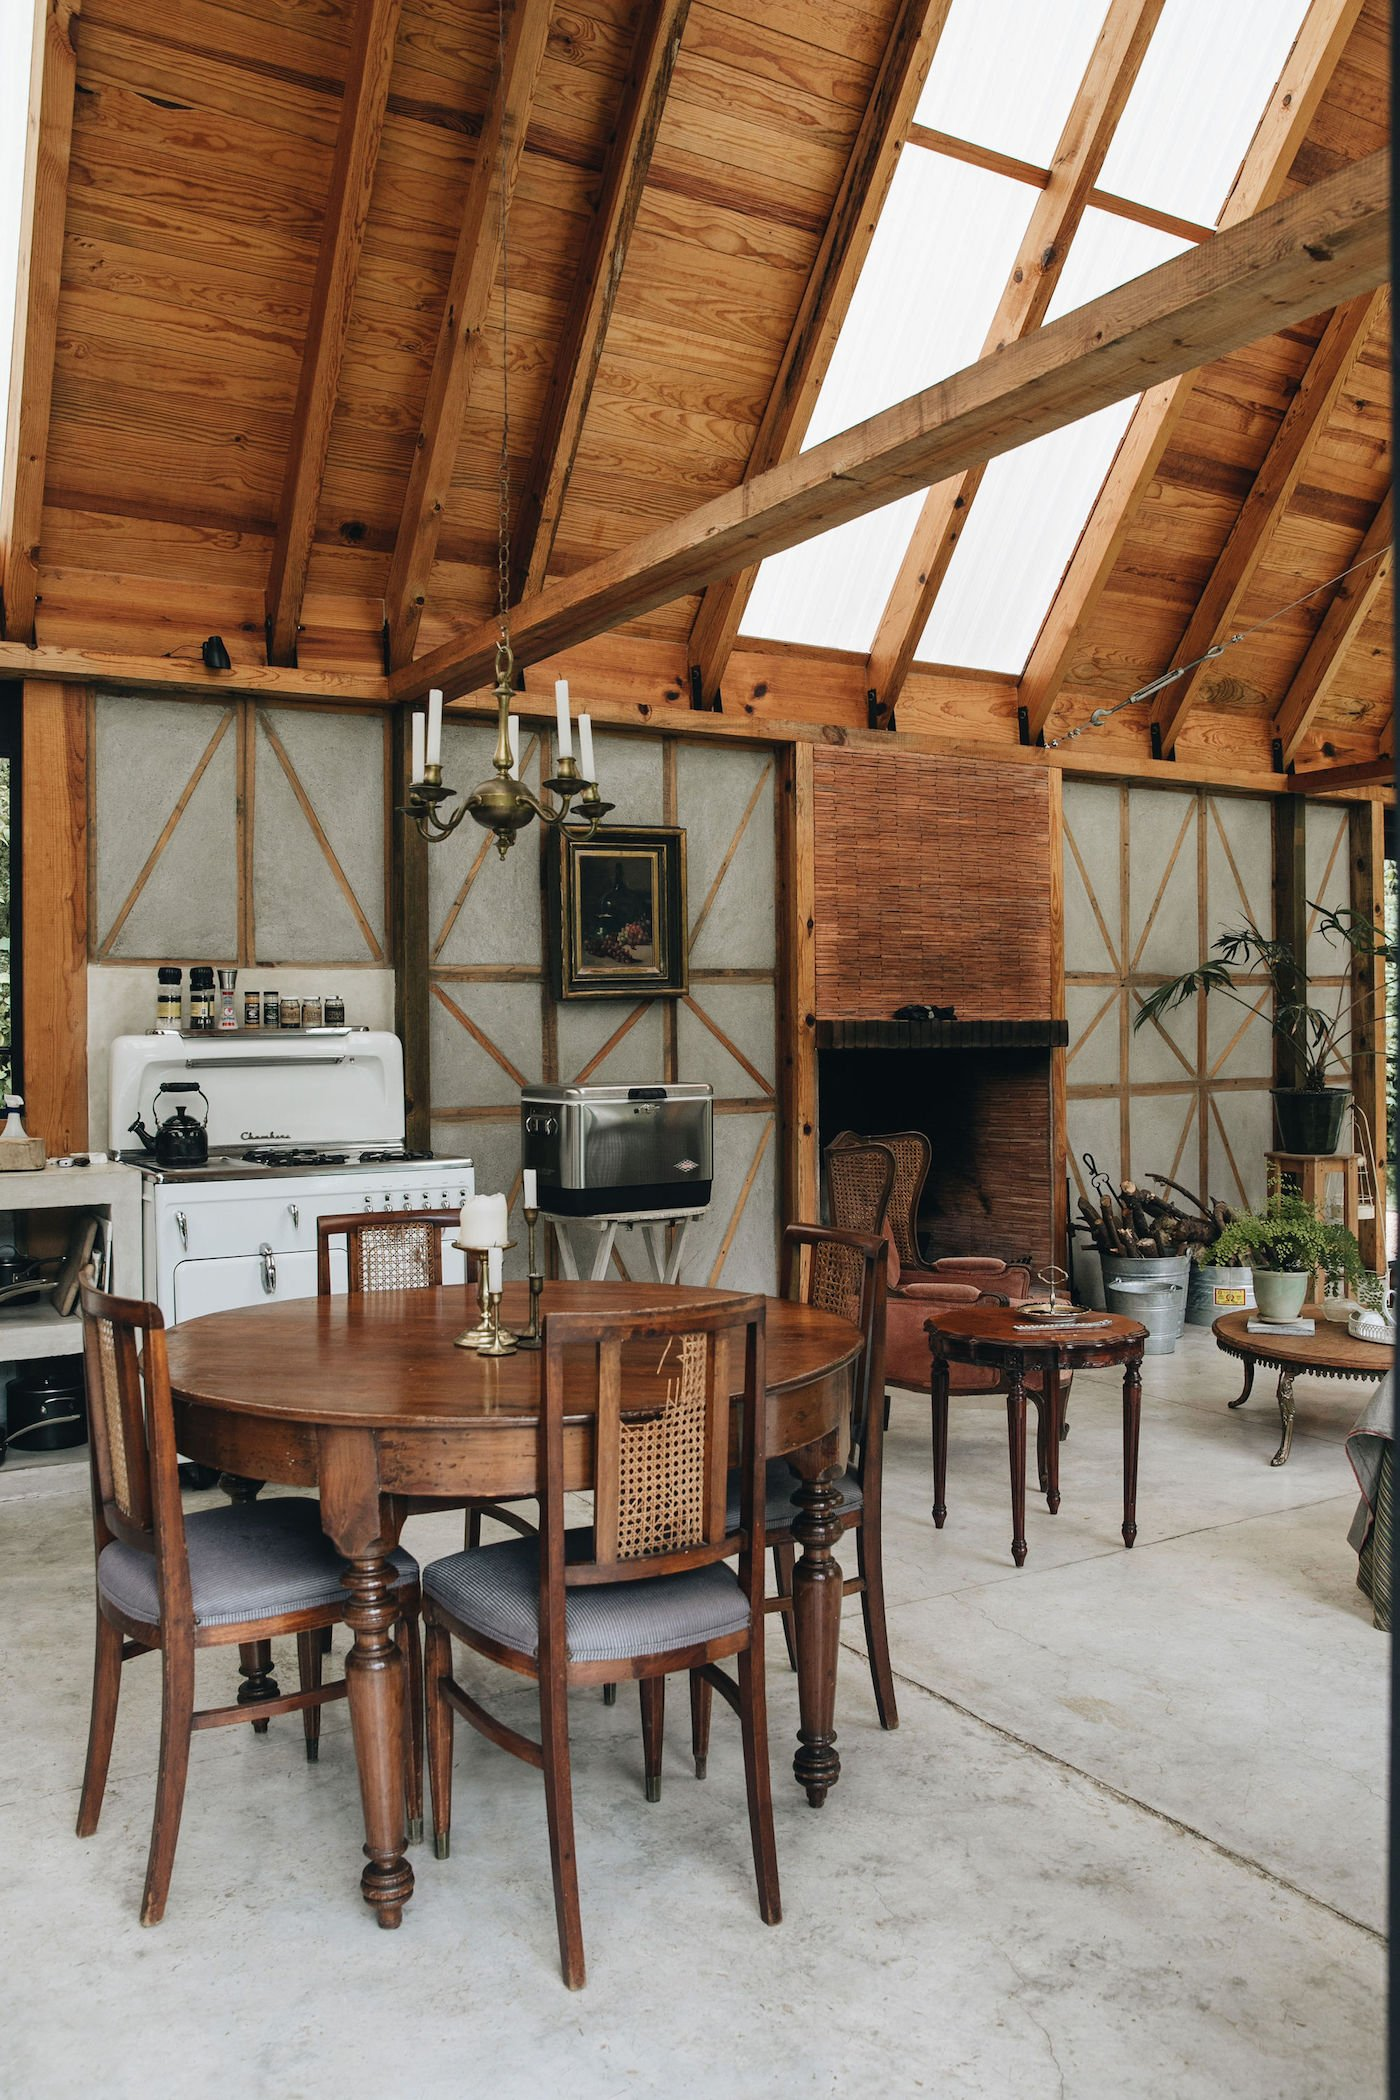 Dining and lounge room in off-grid timber cabin